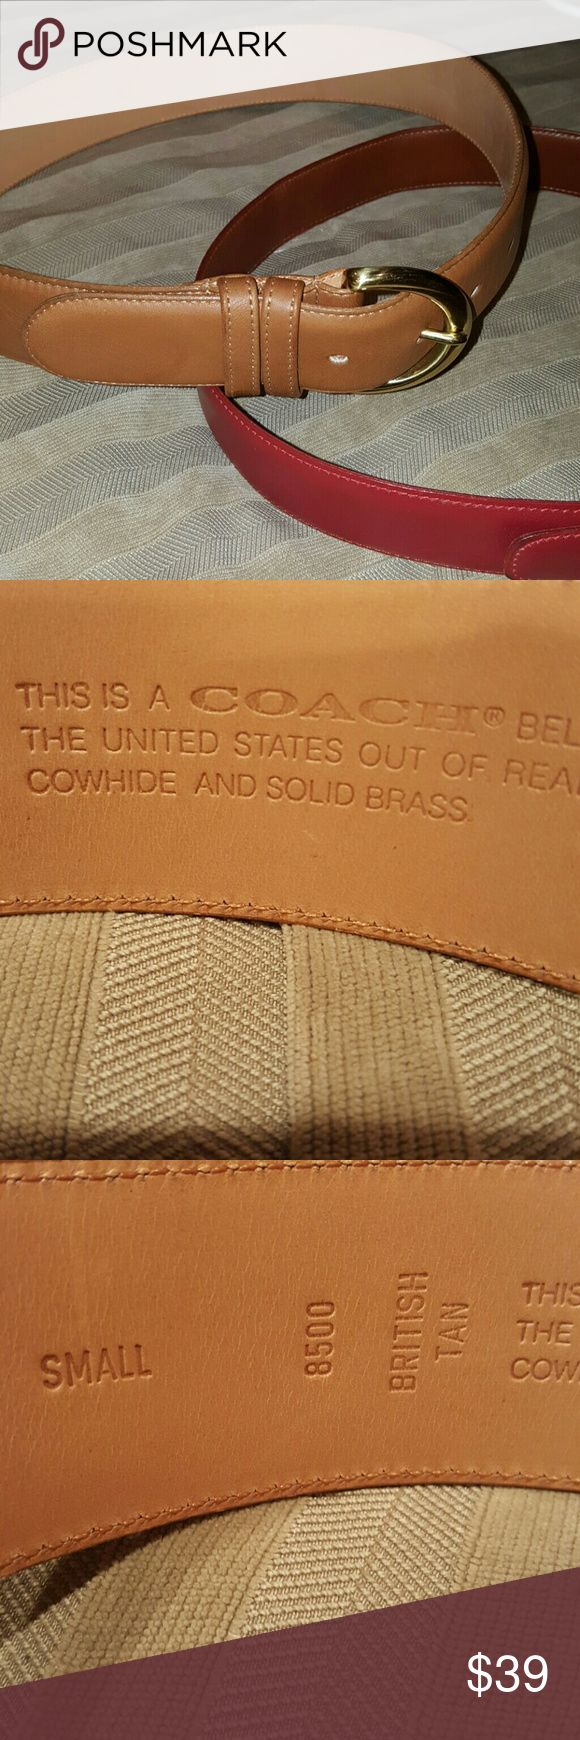 COACH British Tan Belt 8500 Very good condition.  Size small. 30 inches long. Coach Accessories Belts